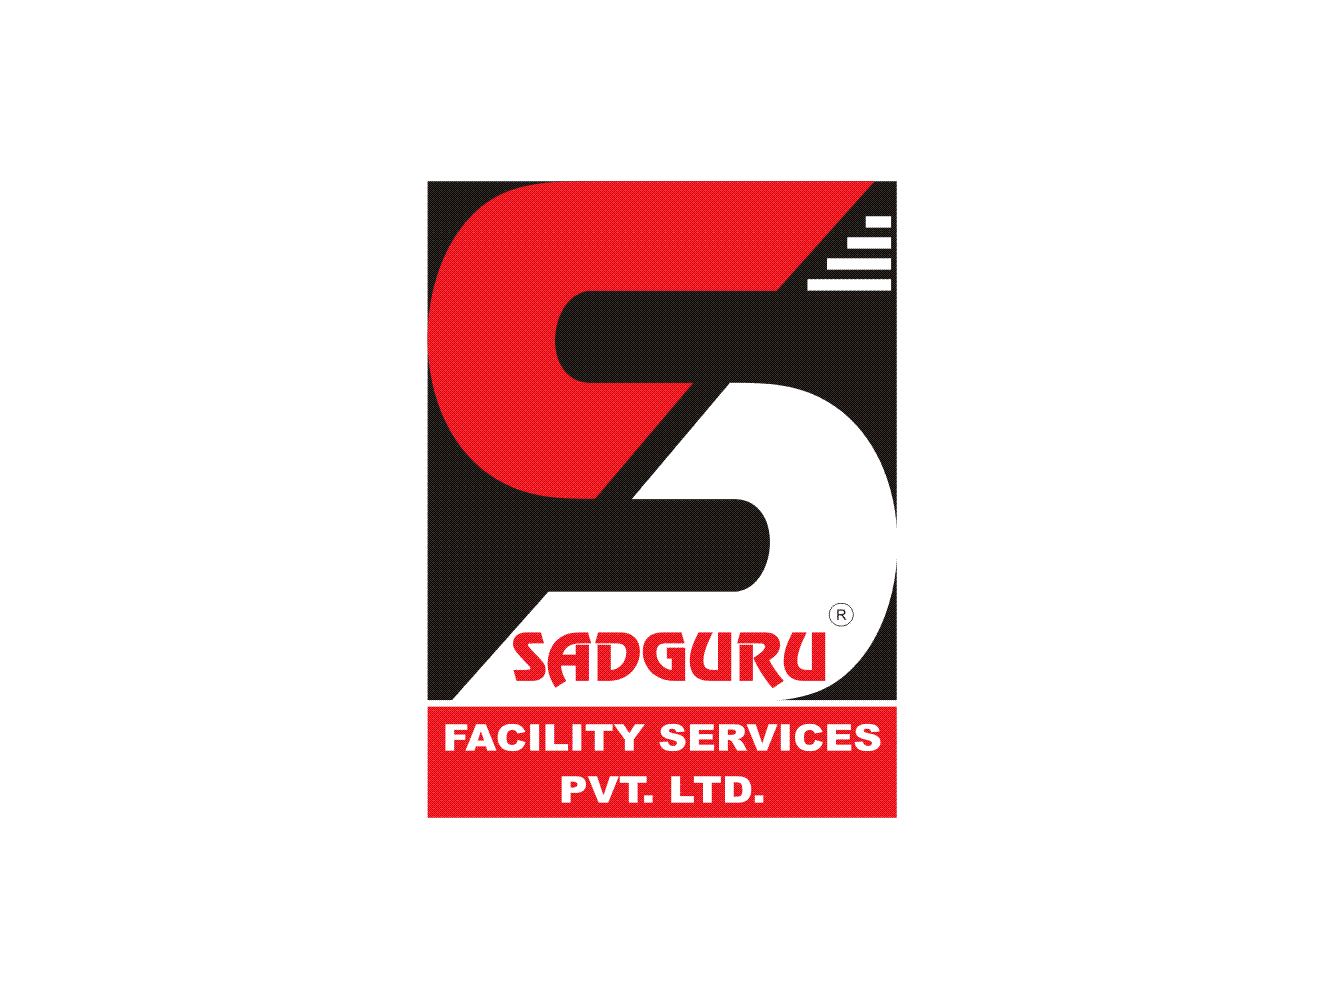 Sadguru Facility Services Pvt Ltd